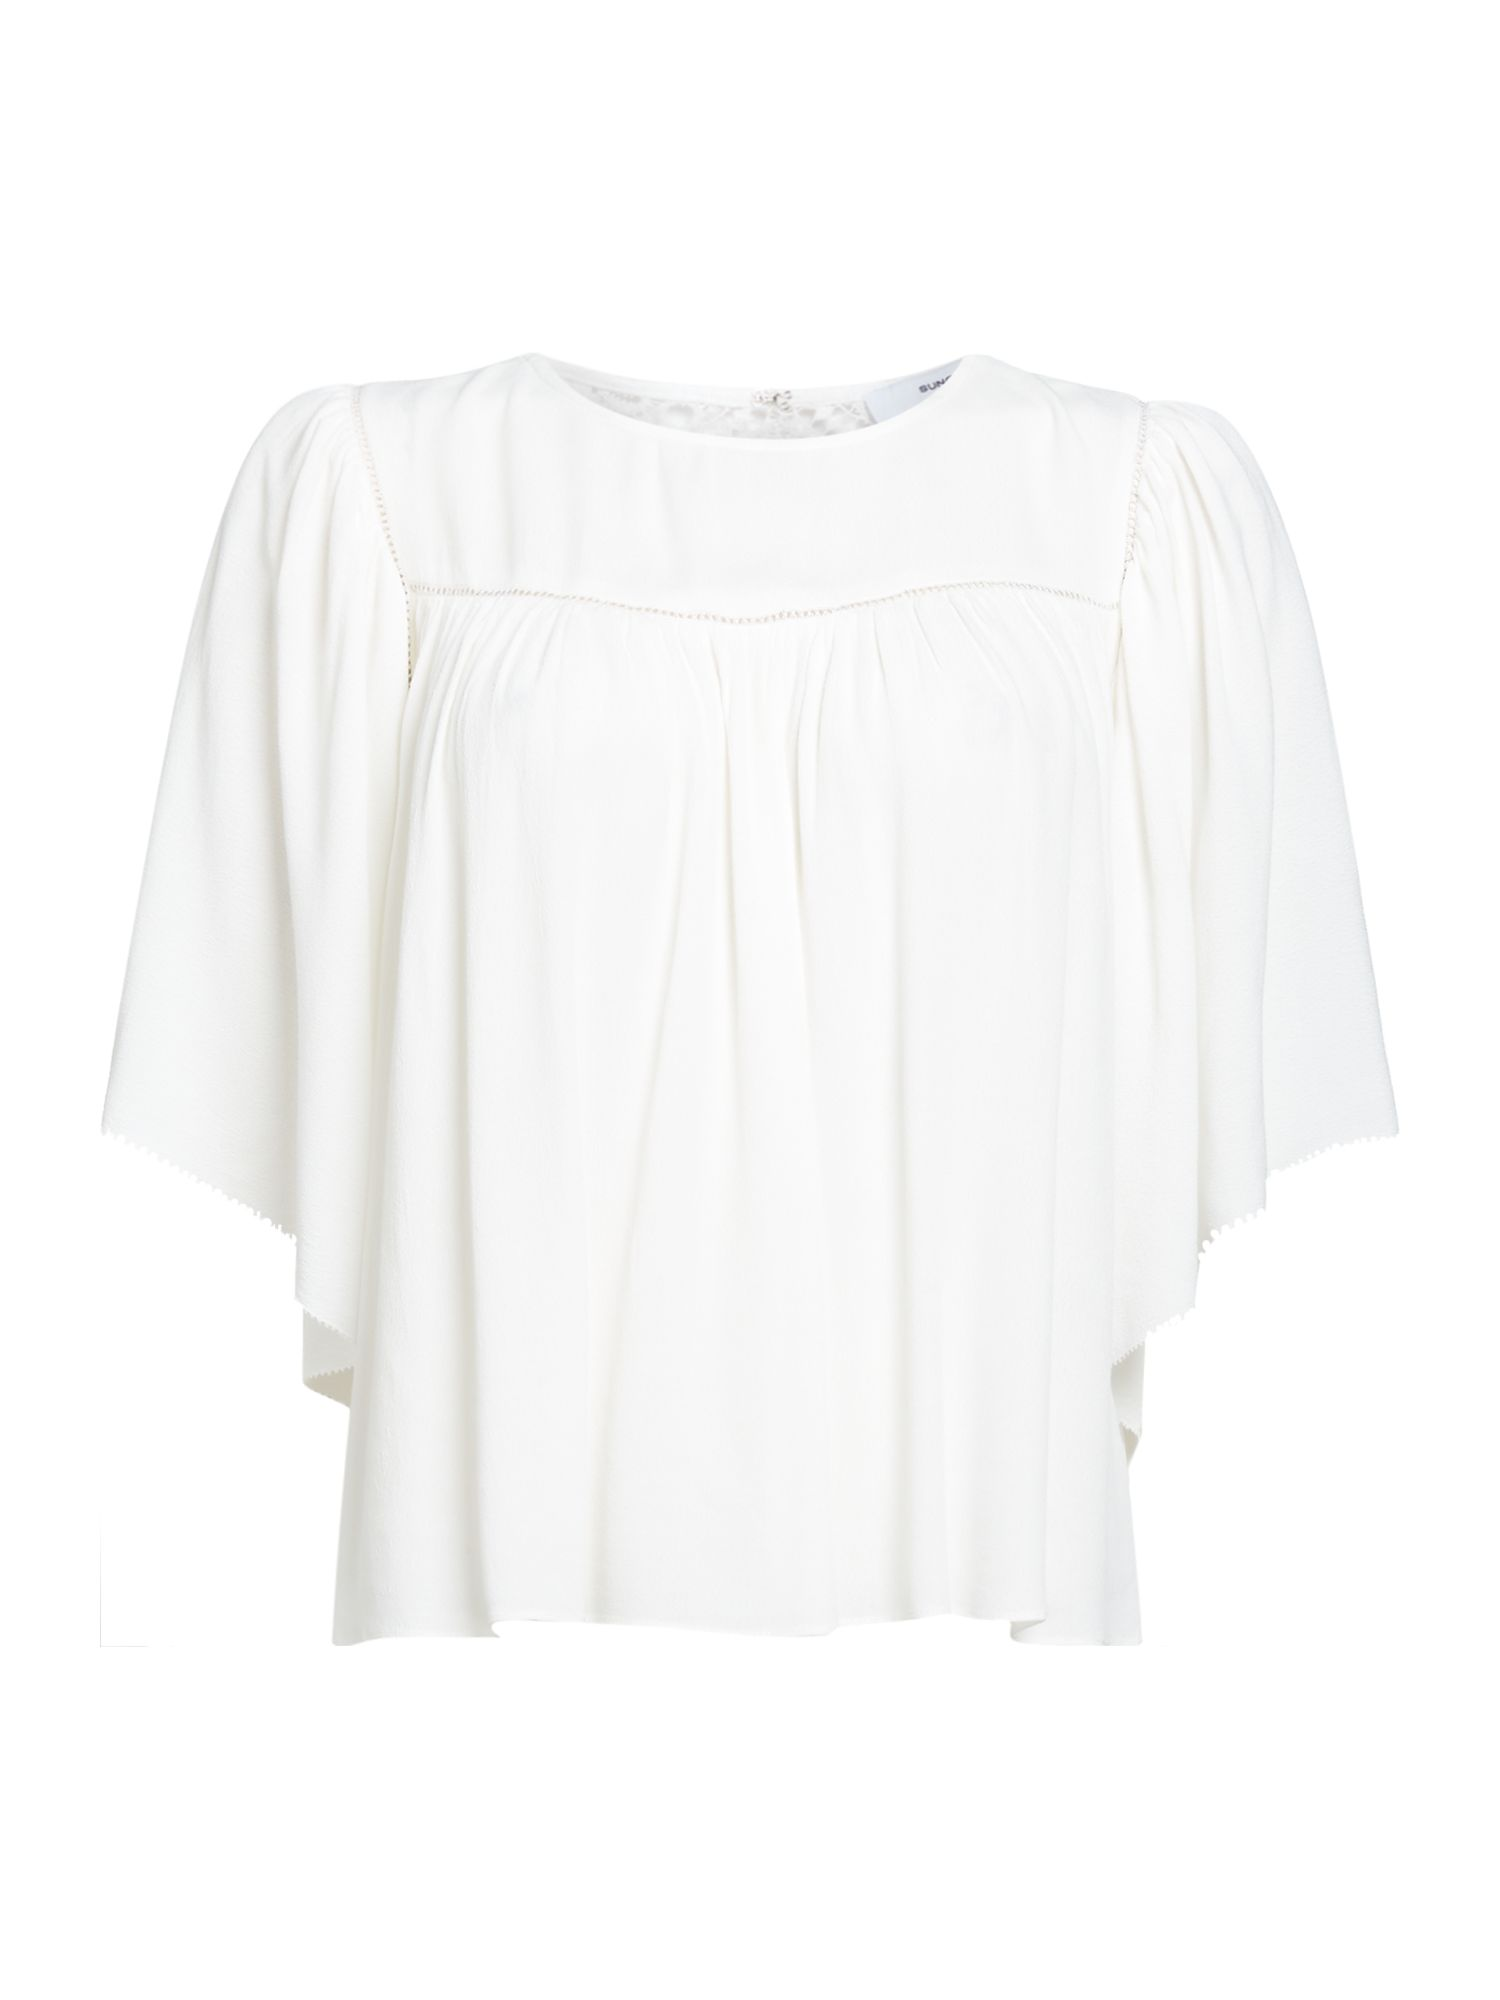 Suncoo Short sleeves Lace Back Top, Off White